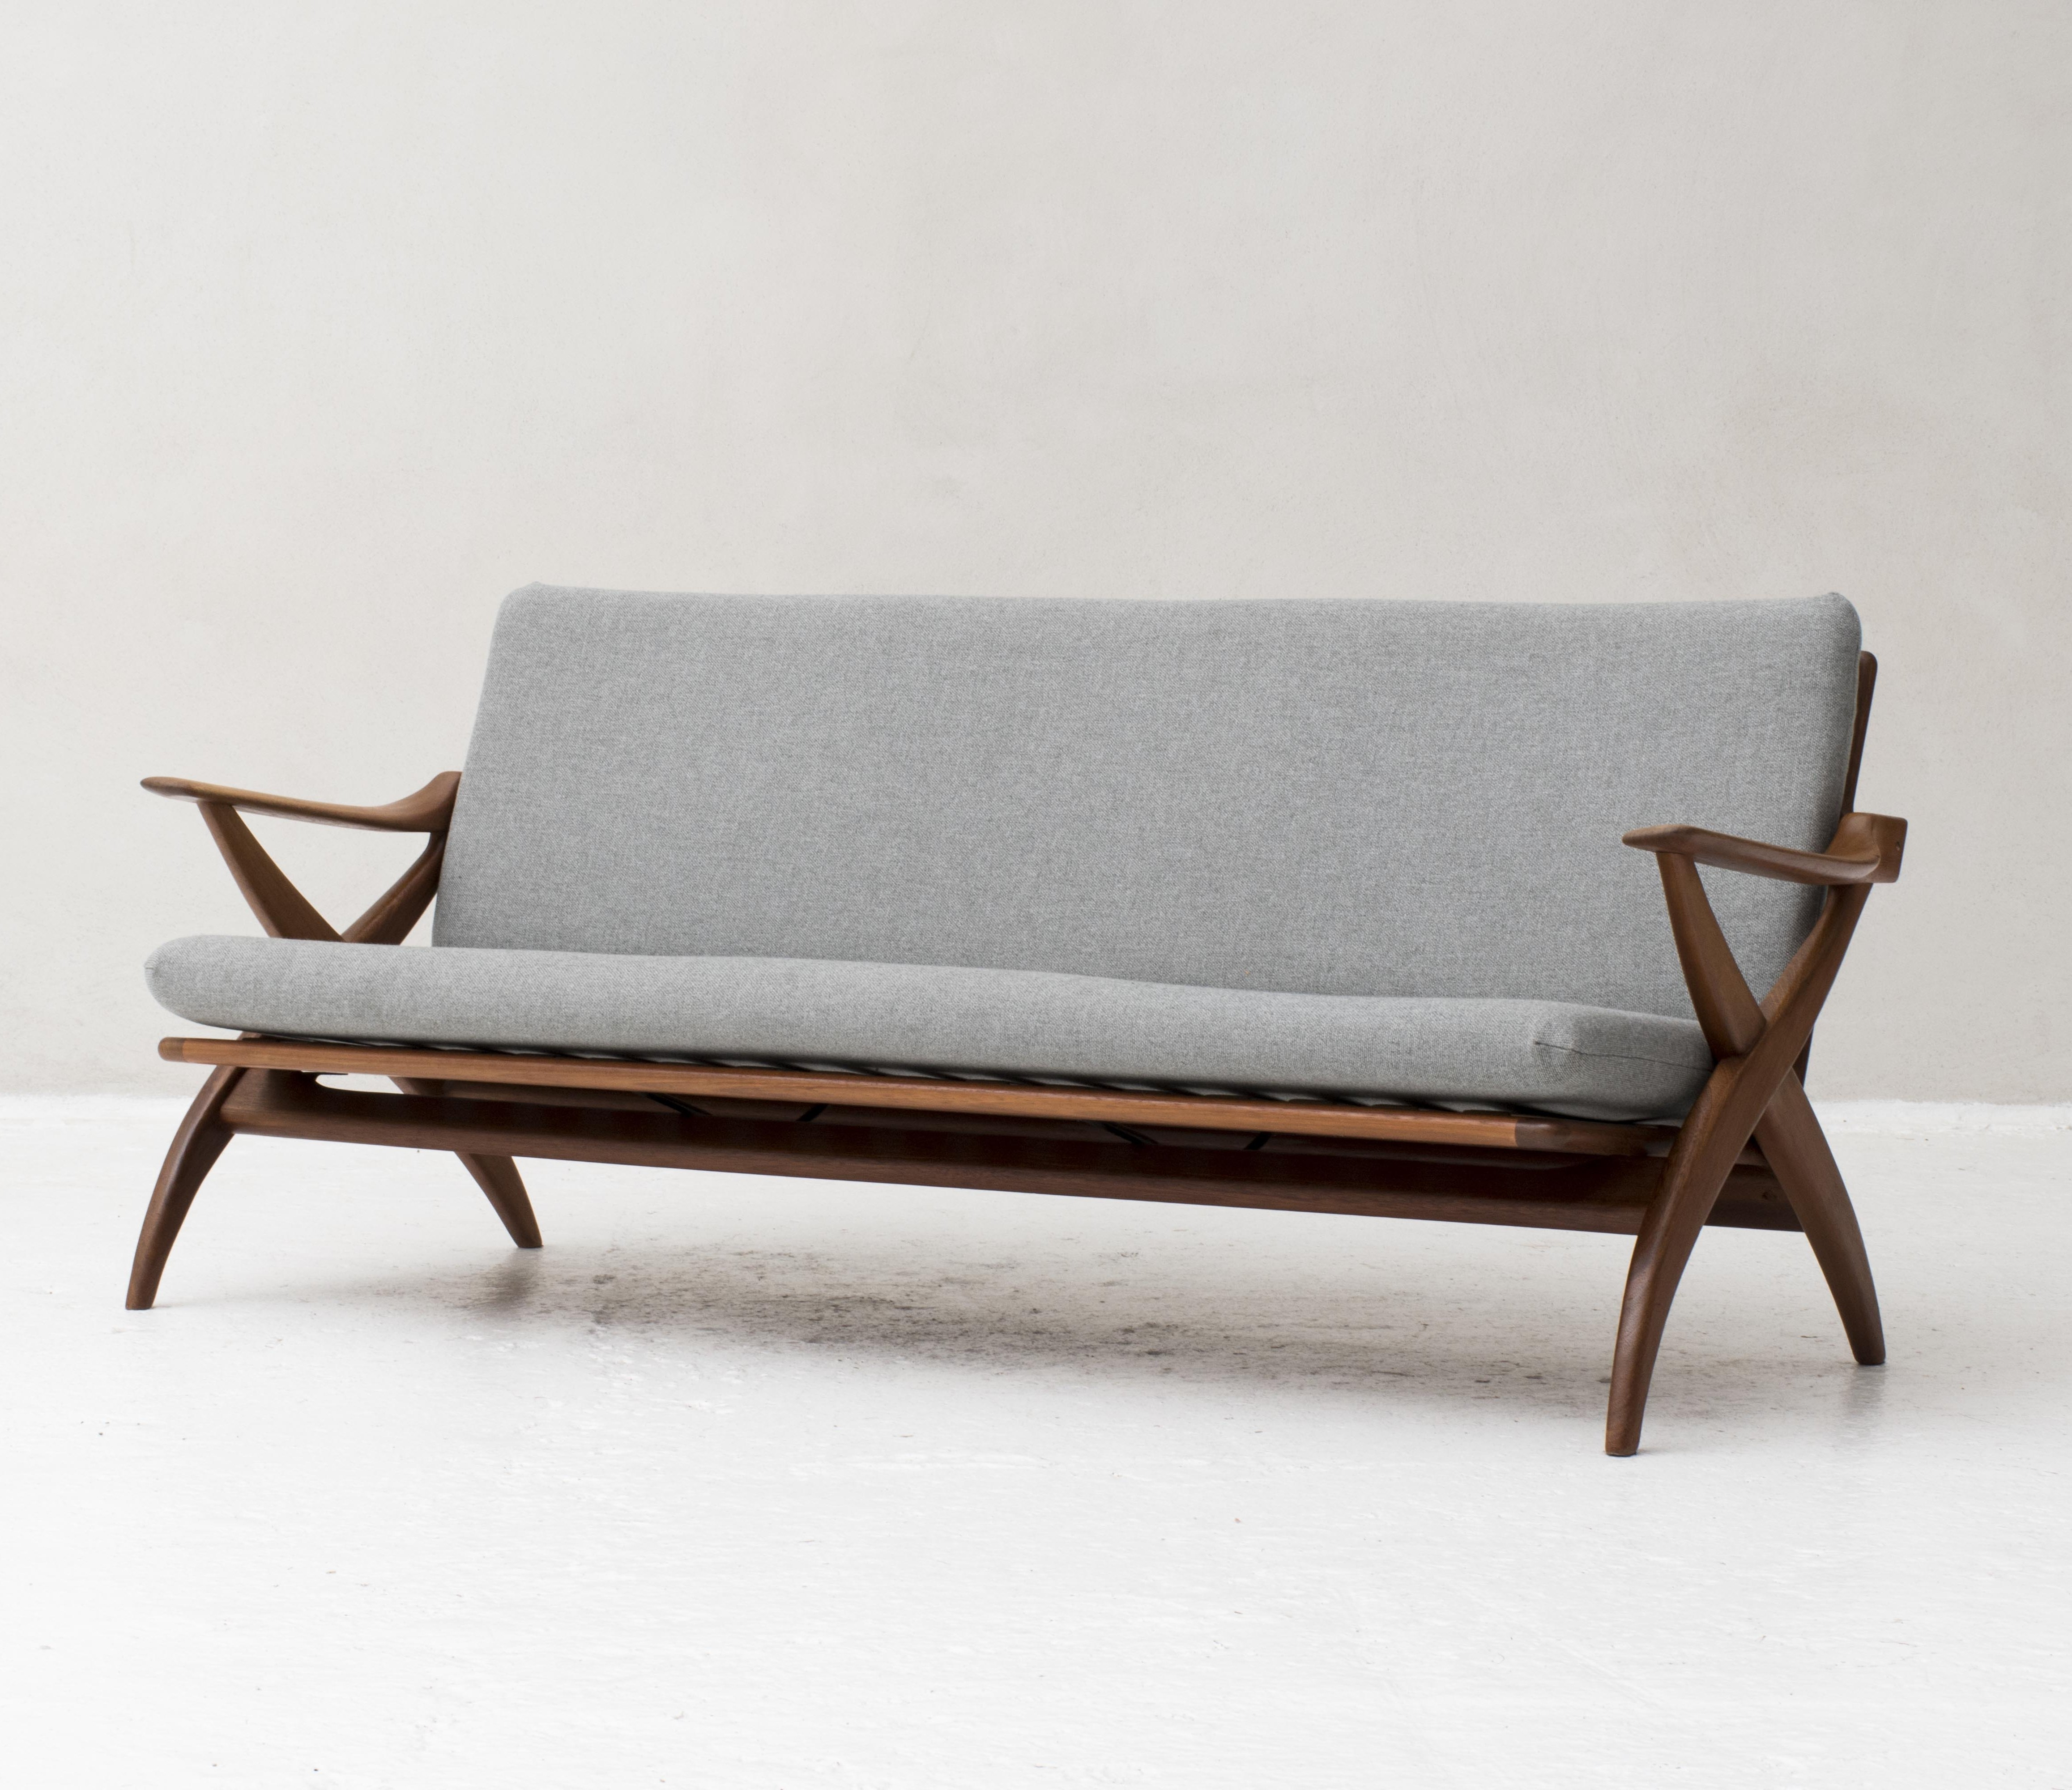 3 Seater Sofa By Topform Dutch Design 1960 77153